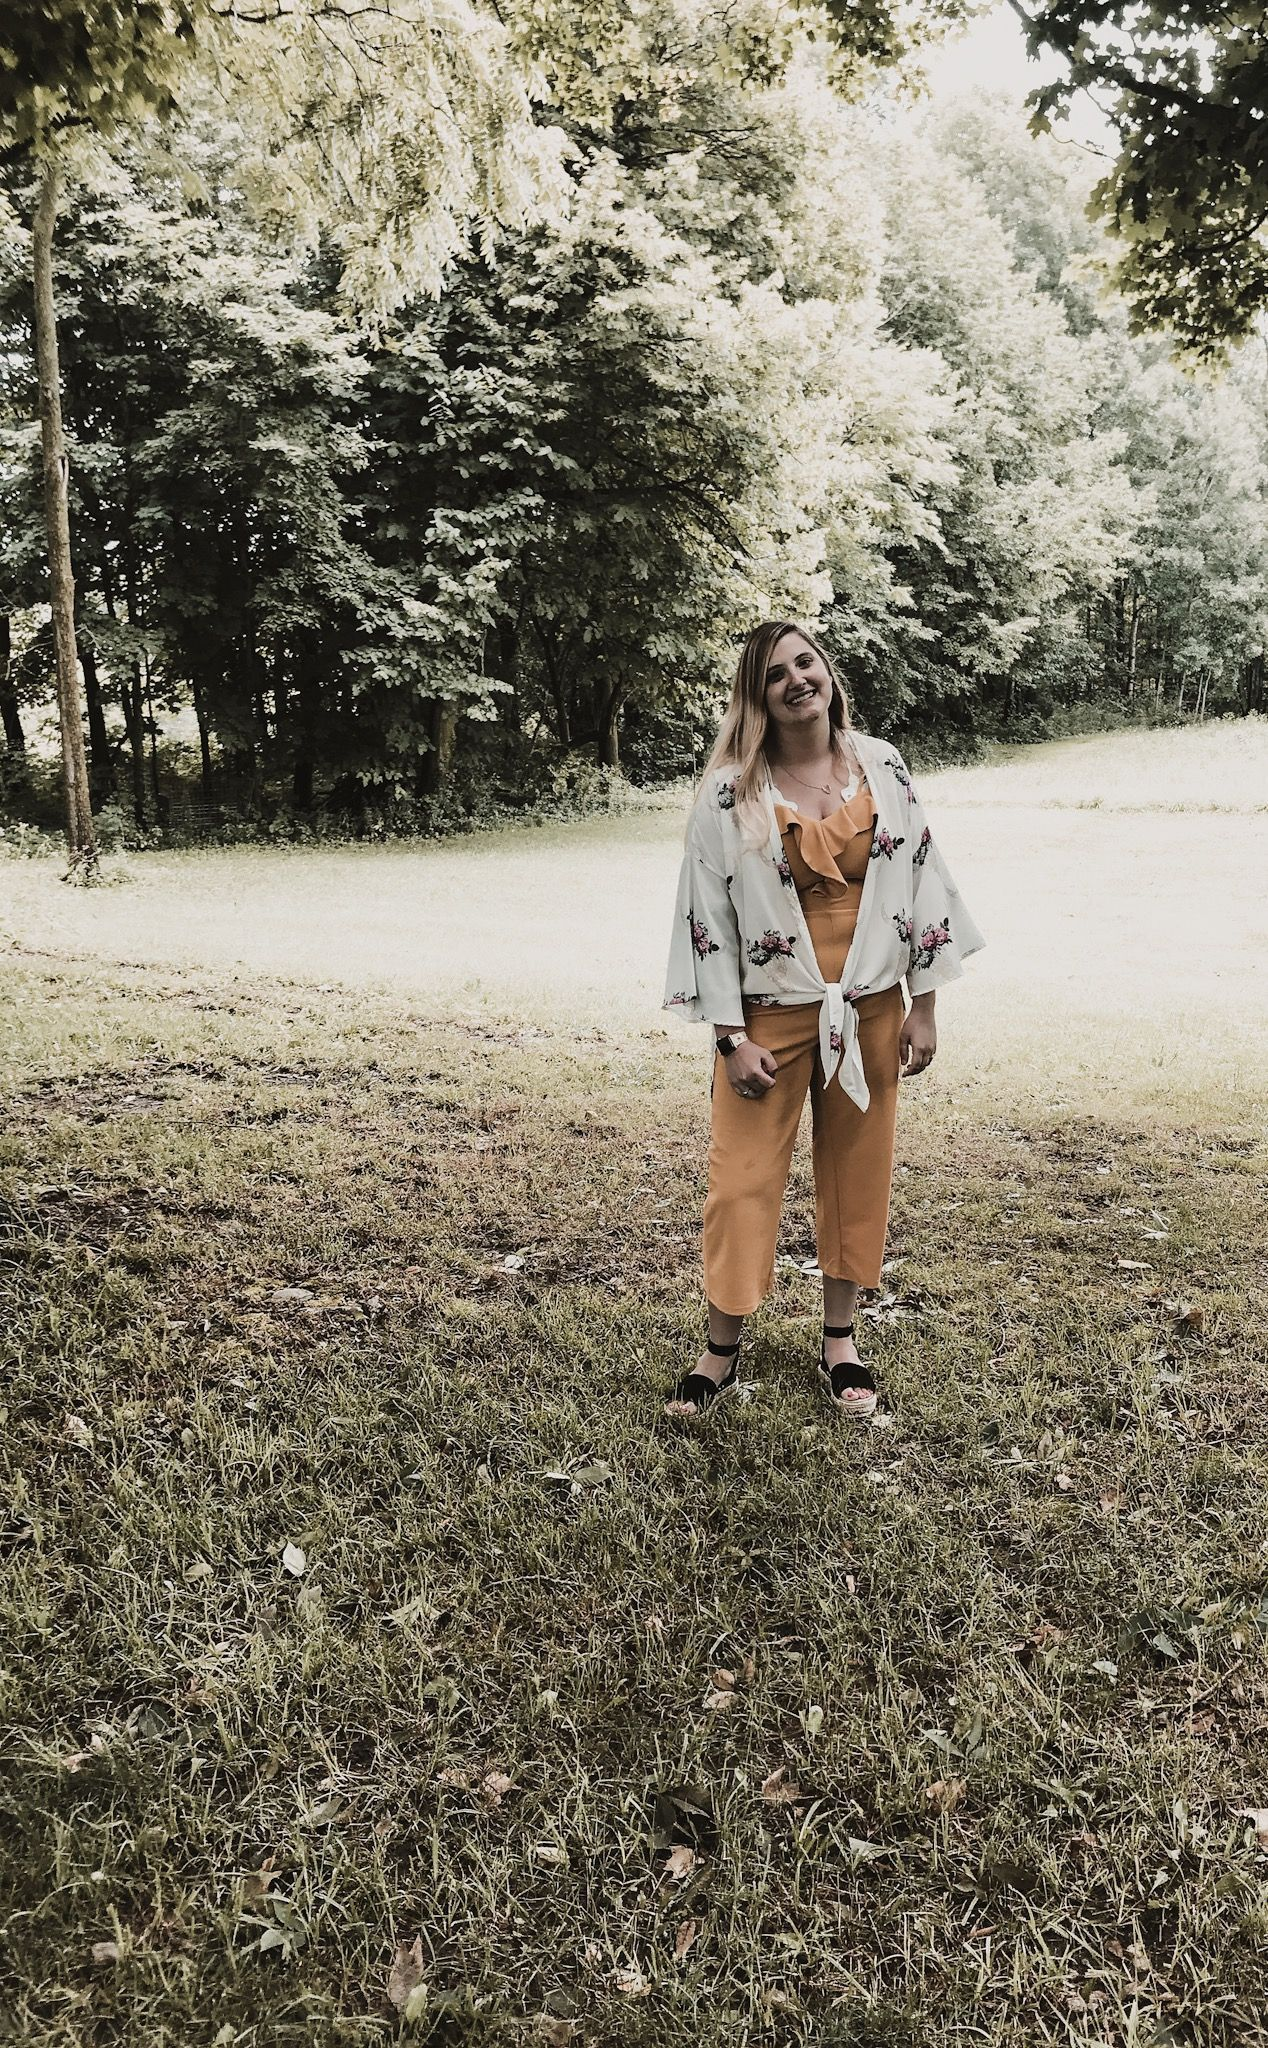 Jump in fall looks with me  #churchoutfitfall A great church outfit and even a good date outfit! #churchoutfitfall Jump in fall looks with me  #churchoutfitfall A great church outfit and even a good date outfit! #churchoutfitfall